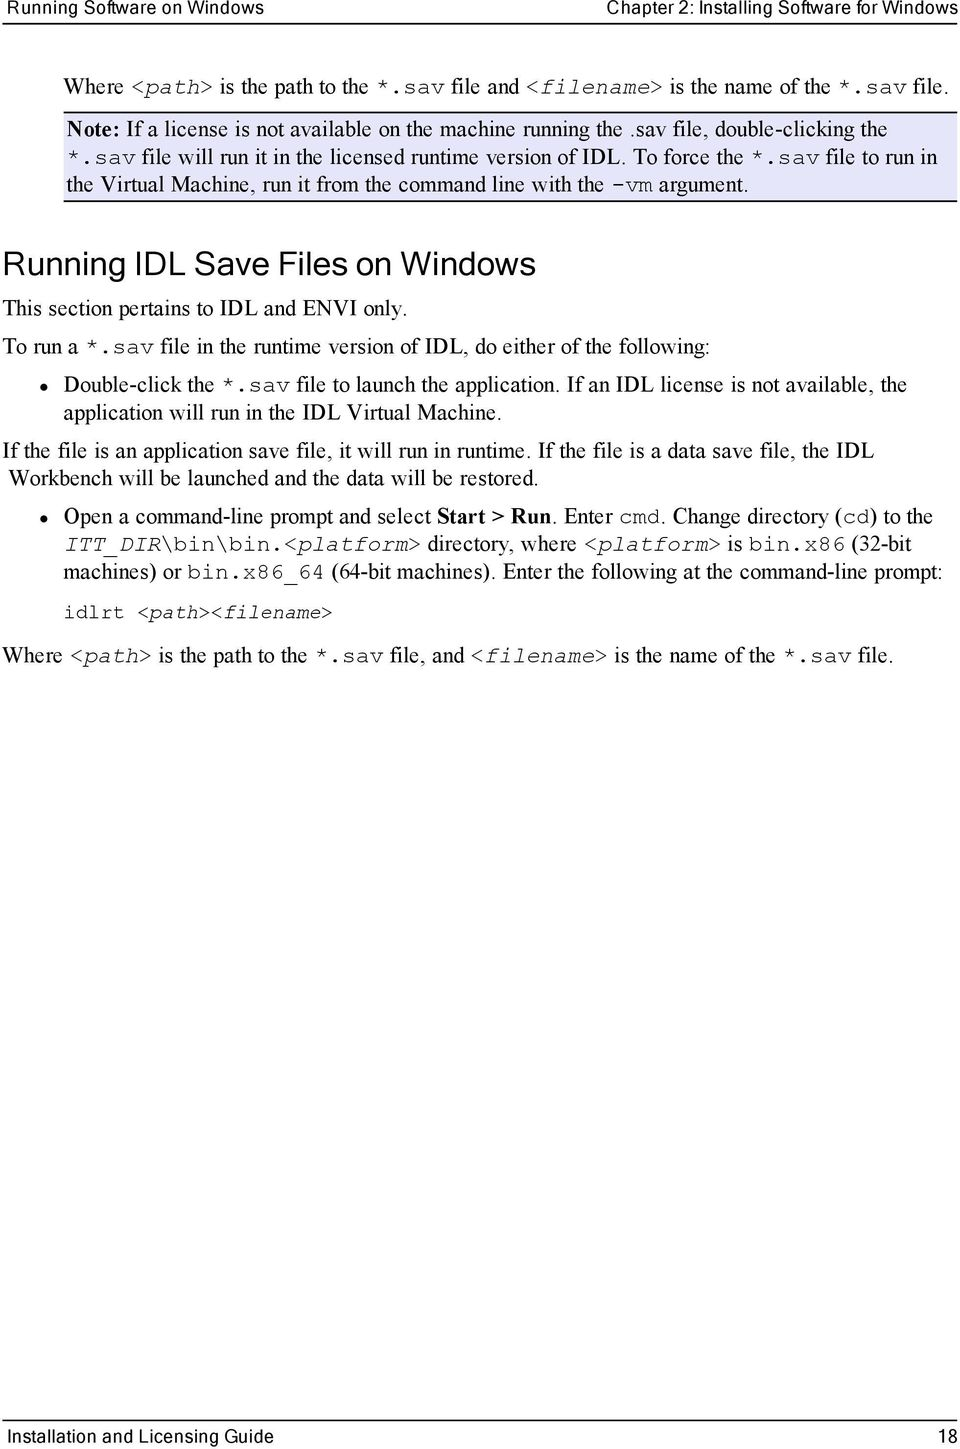 Running IDL Save Files on Windows This section pertains to IDL and ENVI only. To run a *.sav file in the runtime version of IDL, do either of the following: Double-click the *.